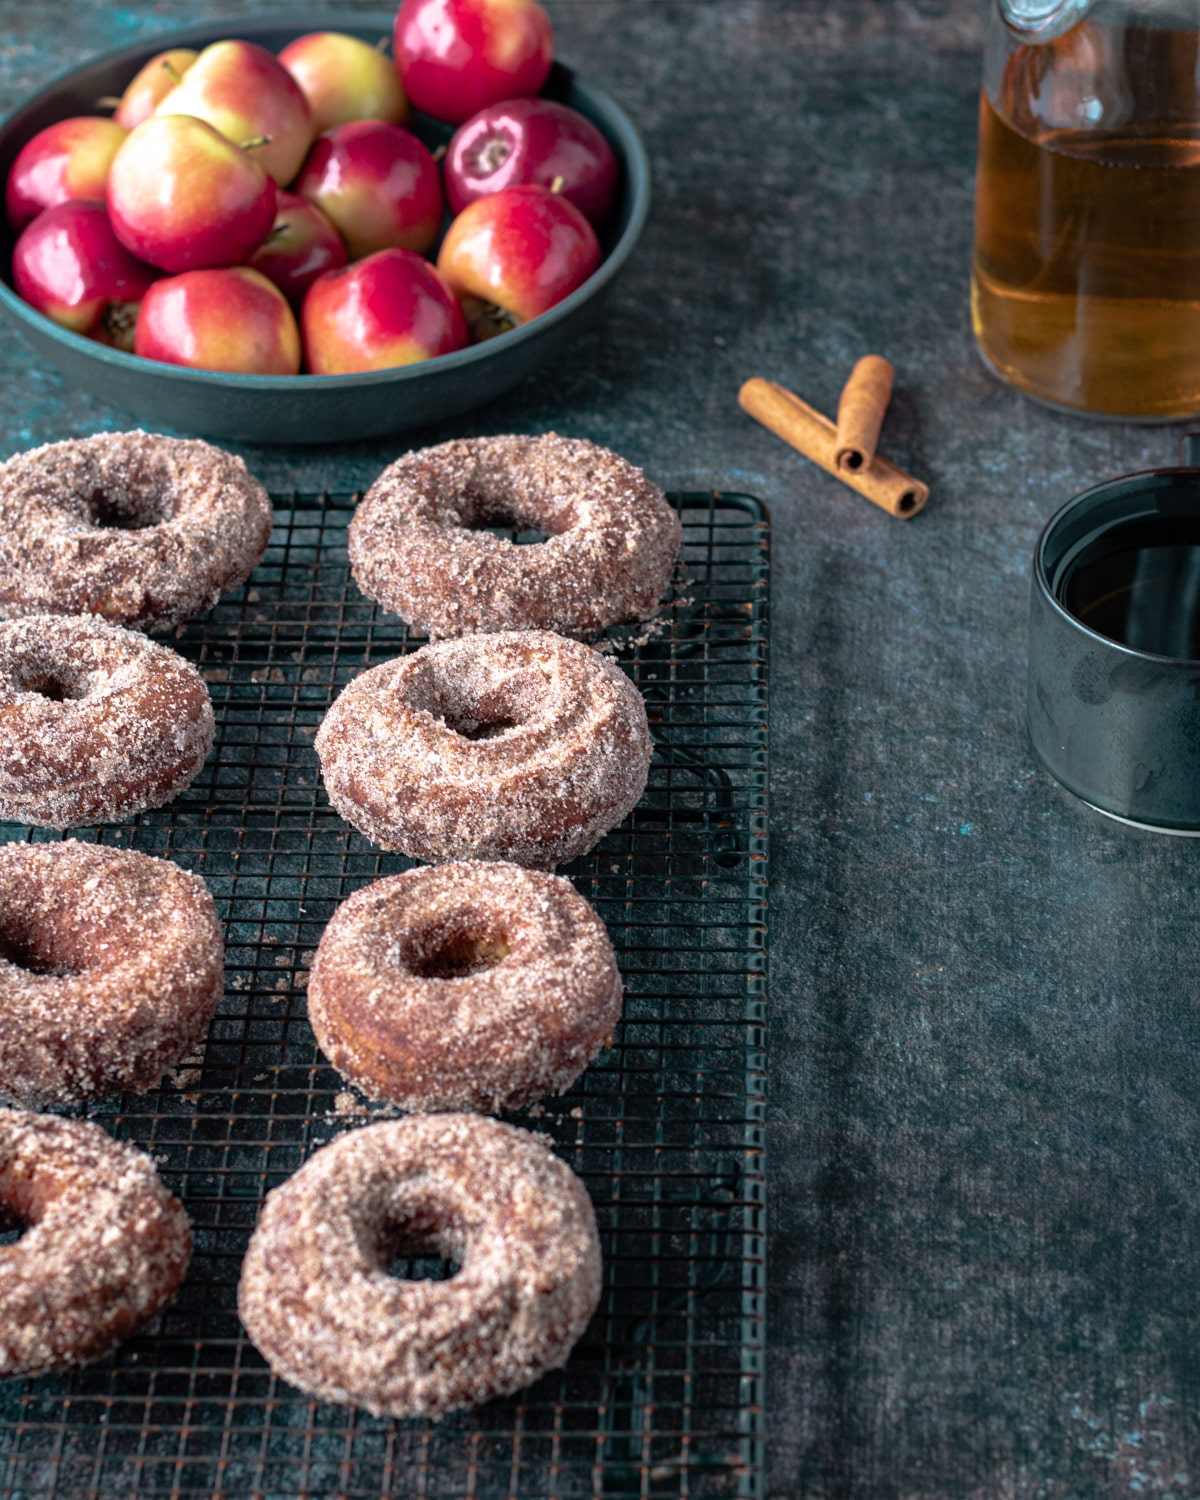 Two rows of apple cider donuts, with a bowl of apples, cinnamon sticks, and cider.